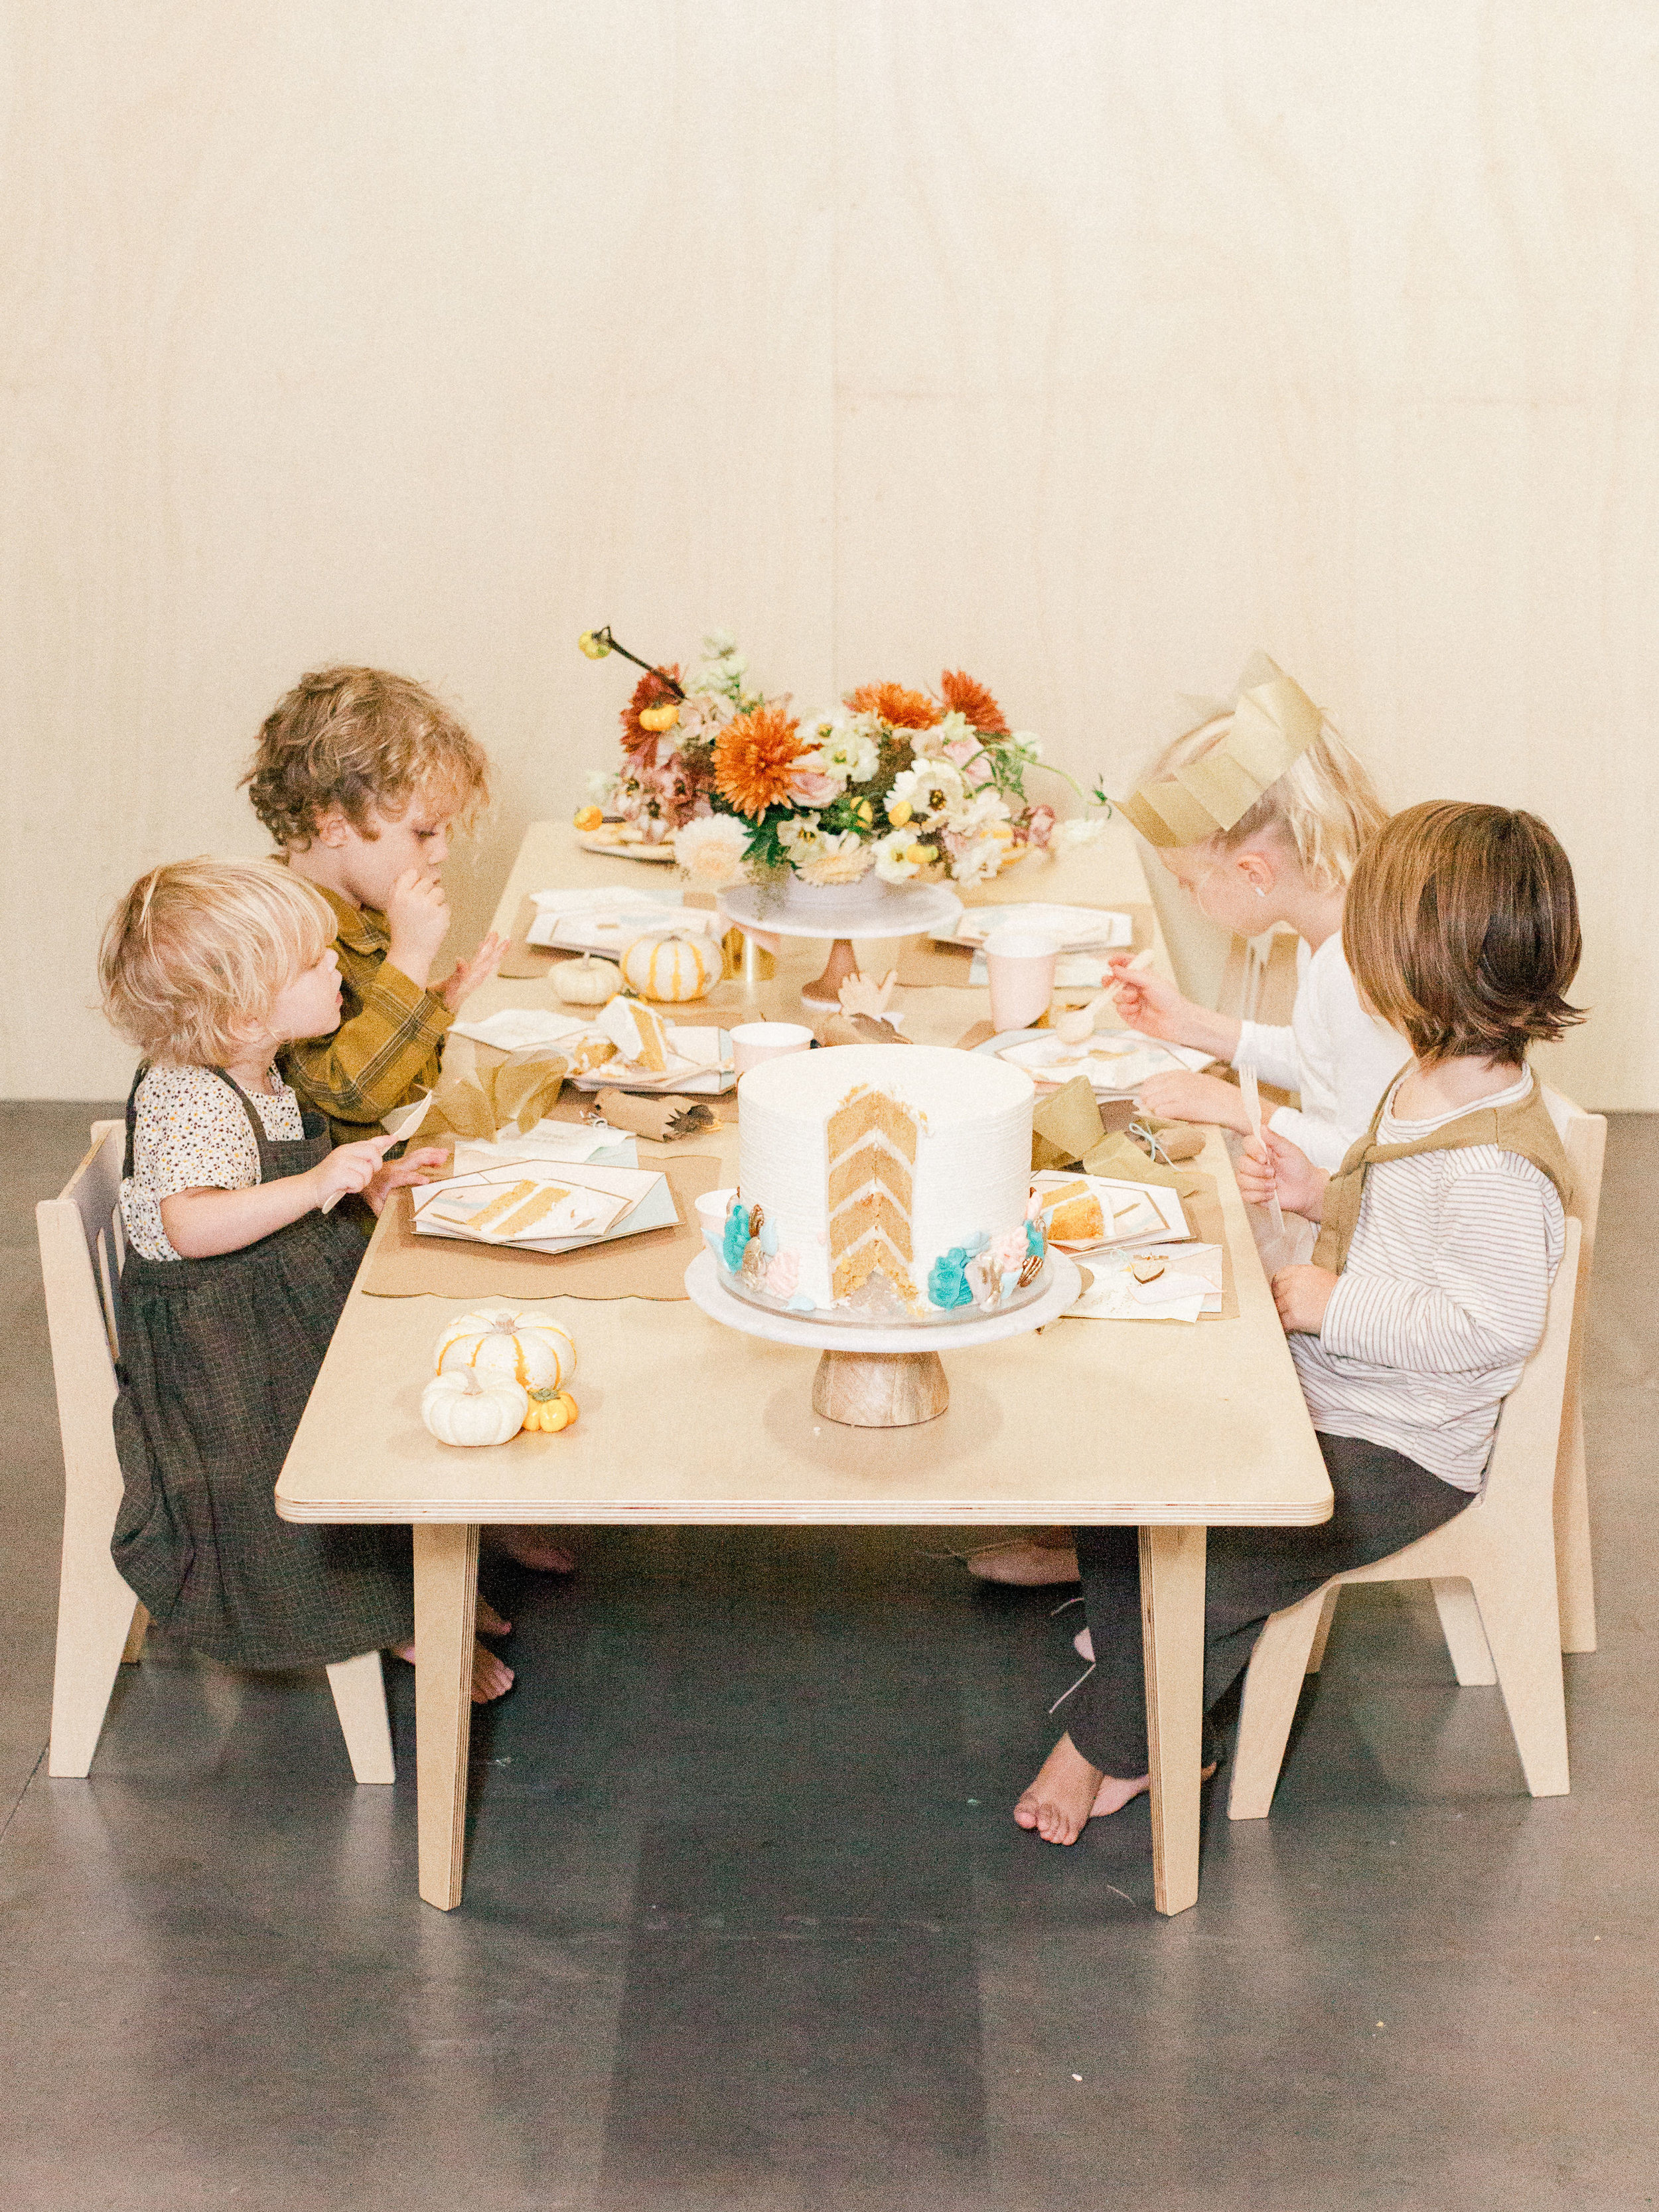 Oui Party Thanksgiving - Kids' Table.jpg